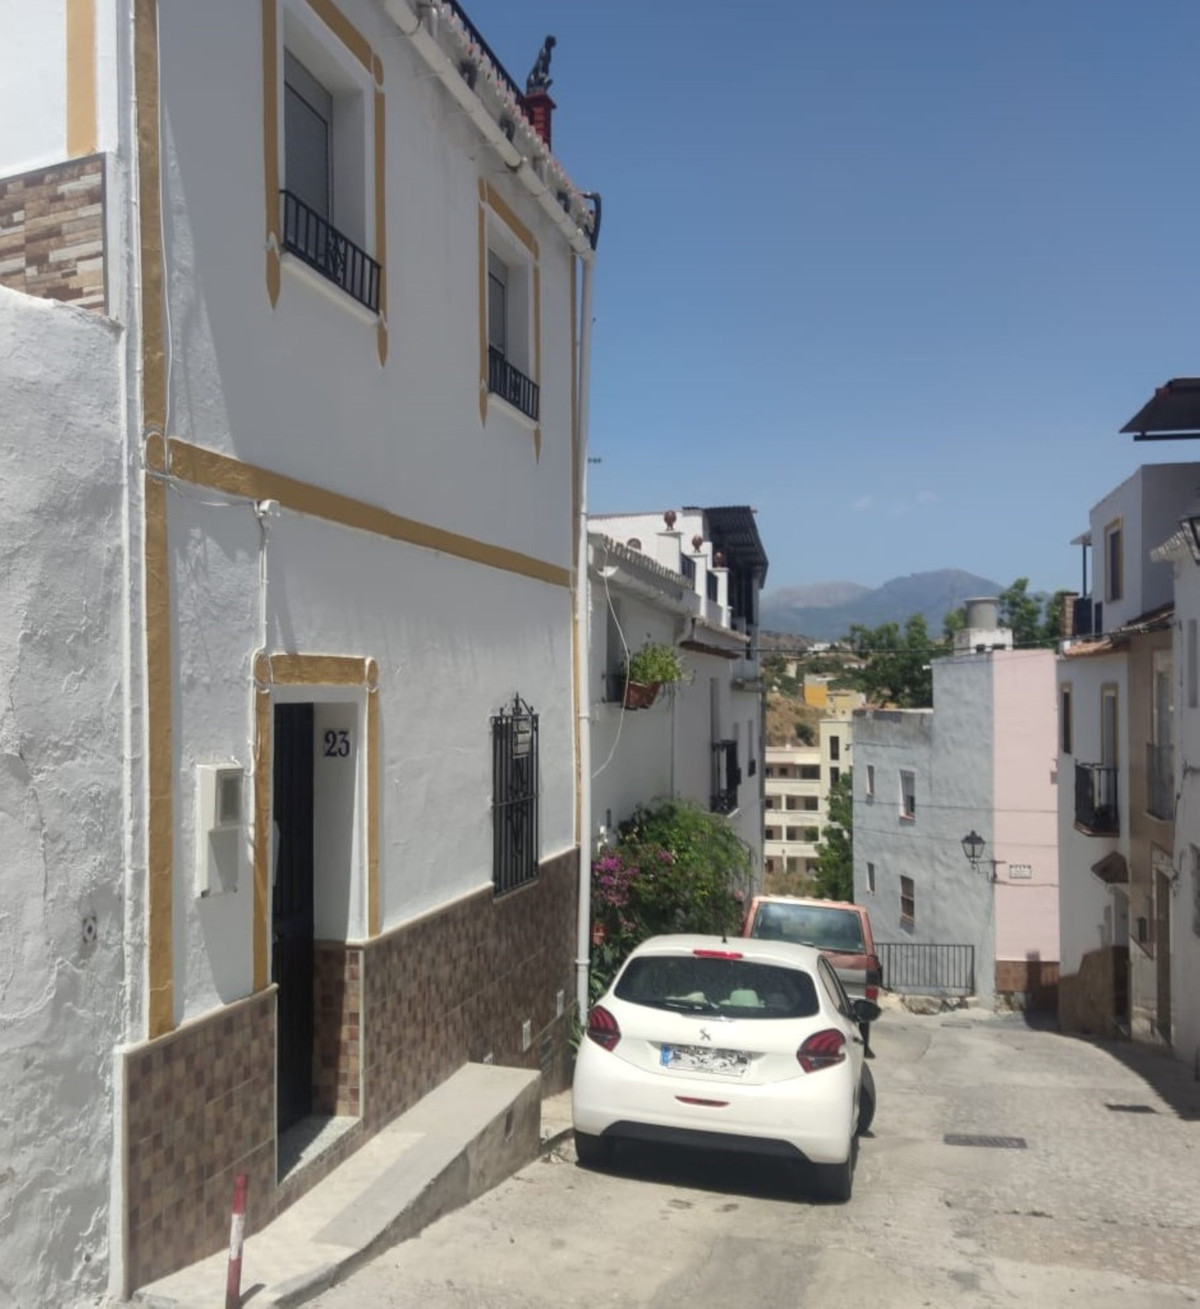 Economic house opportunity. House of 40 m2 approxi